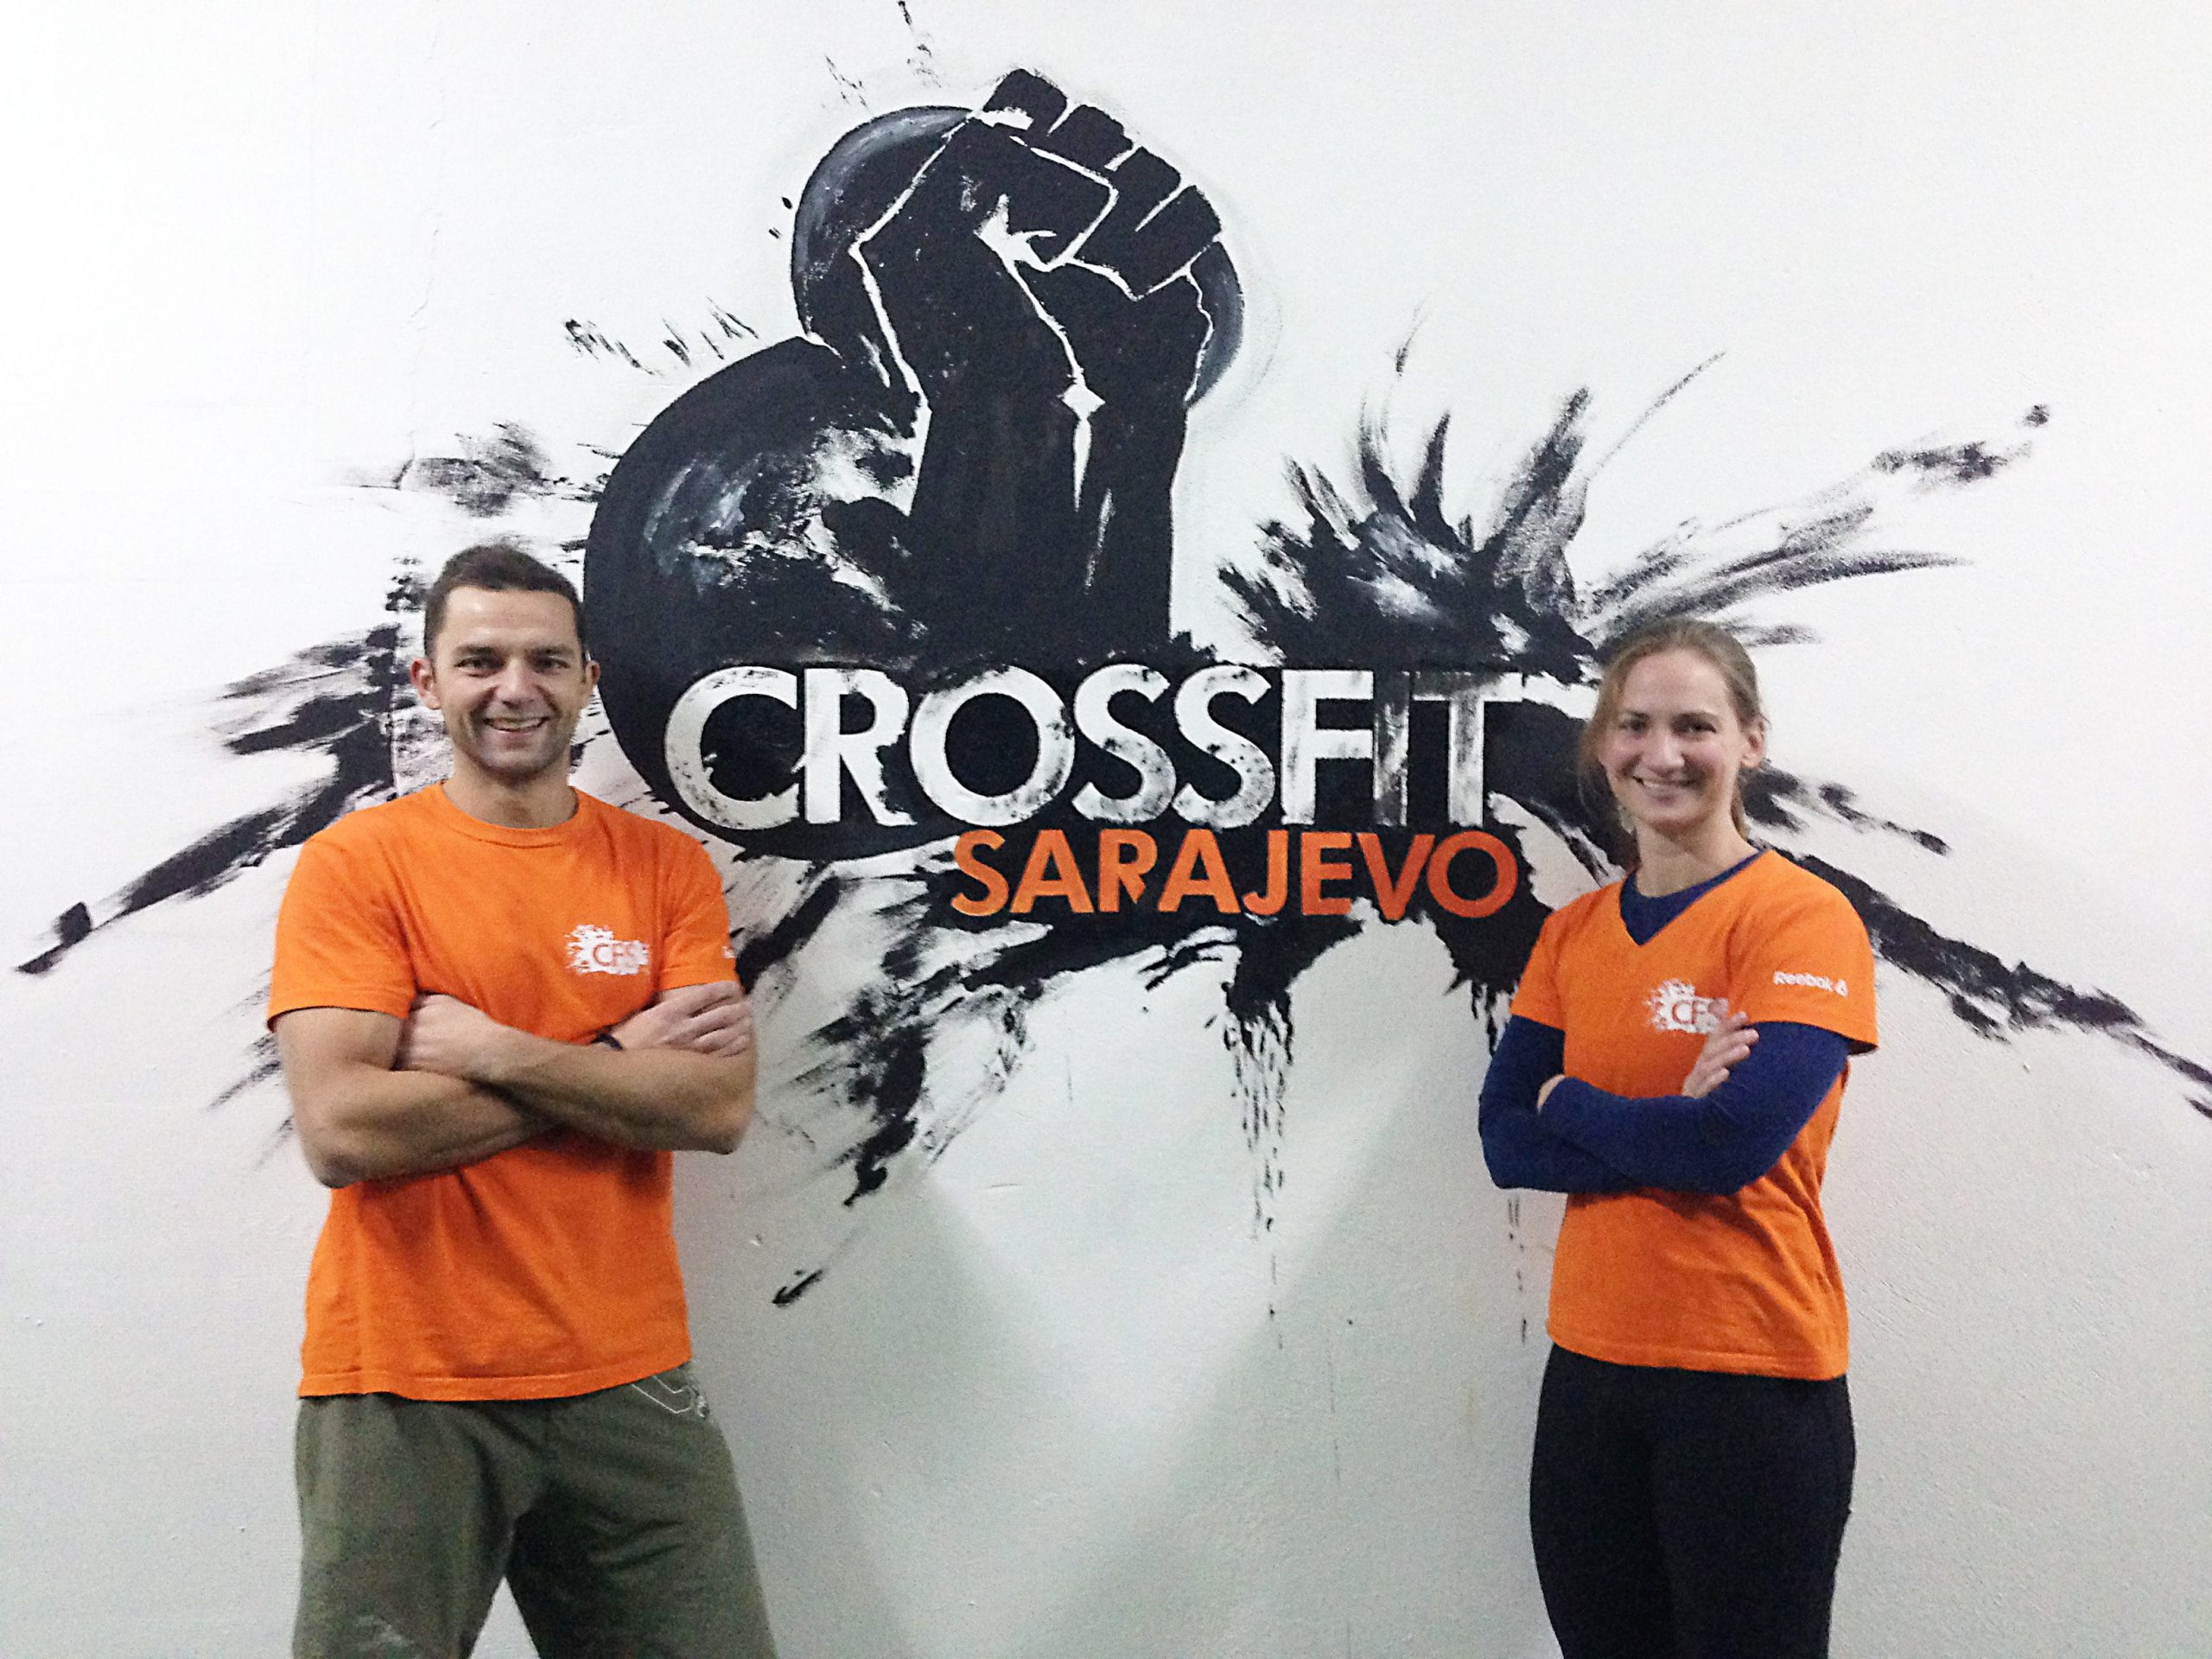 CrossFit Sarajevo: From a Refugee to a Box Owner with A Vision